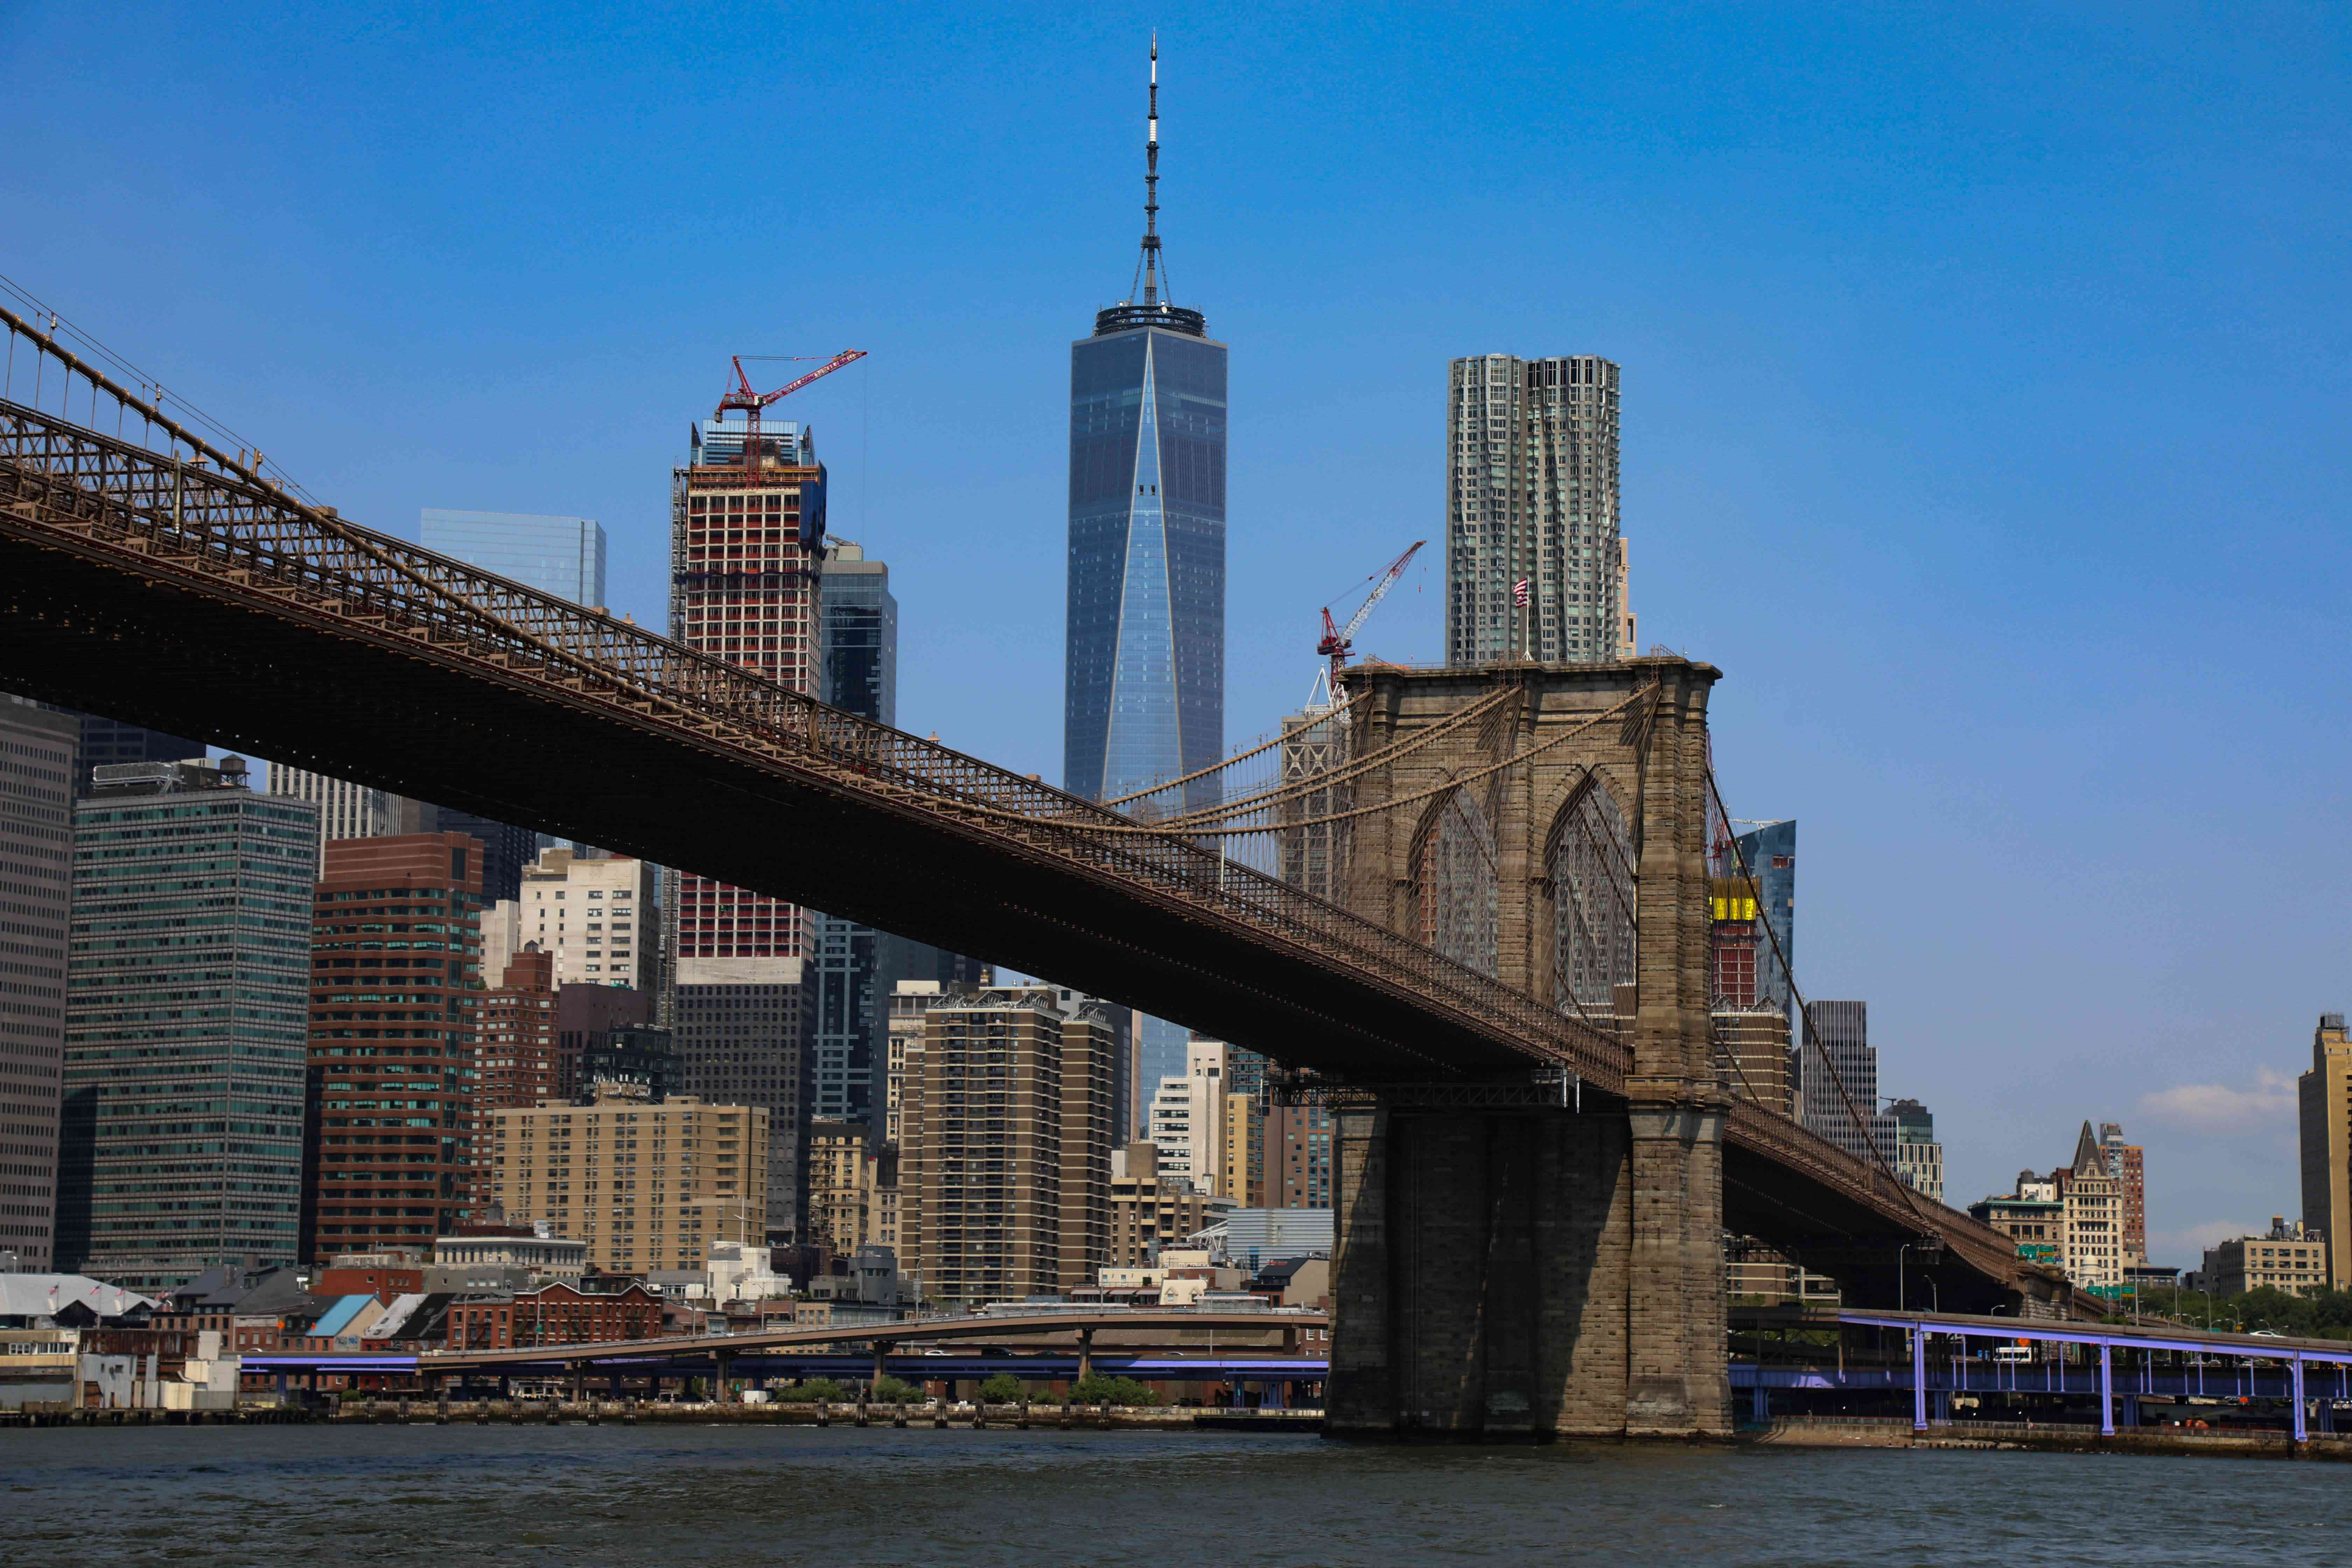 A view of the Brooklyn Bridge with the skyline in the background